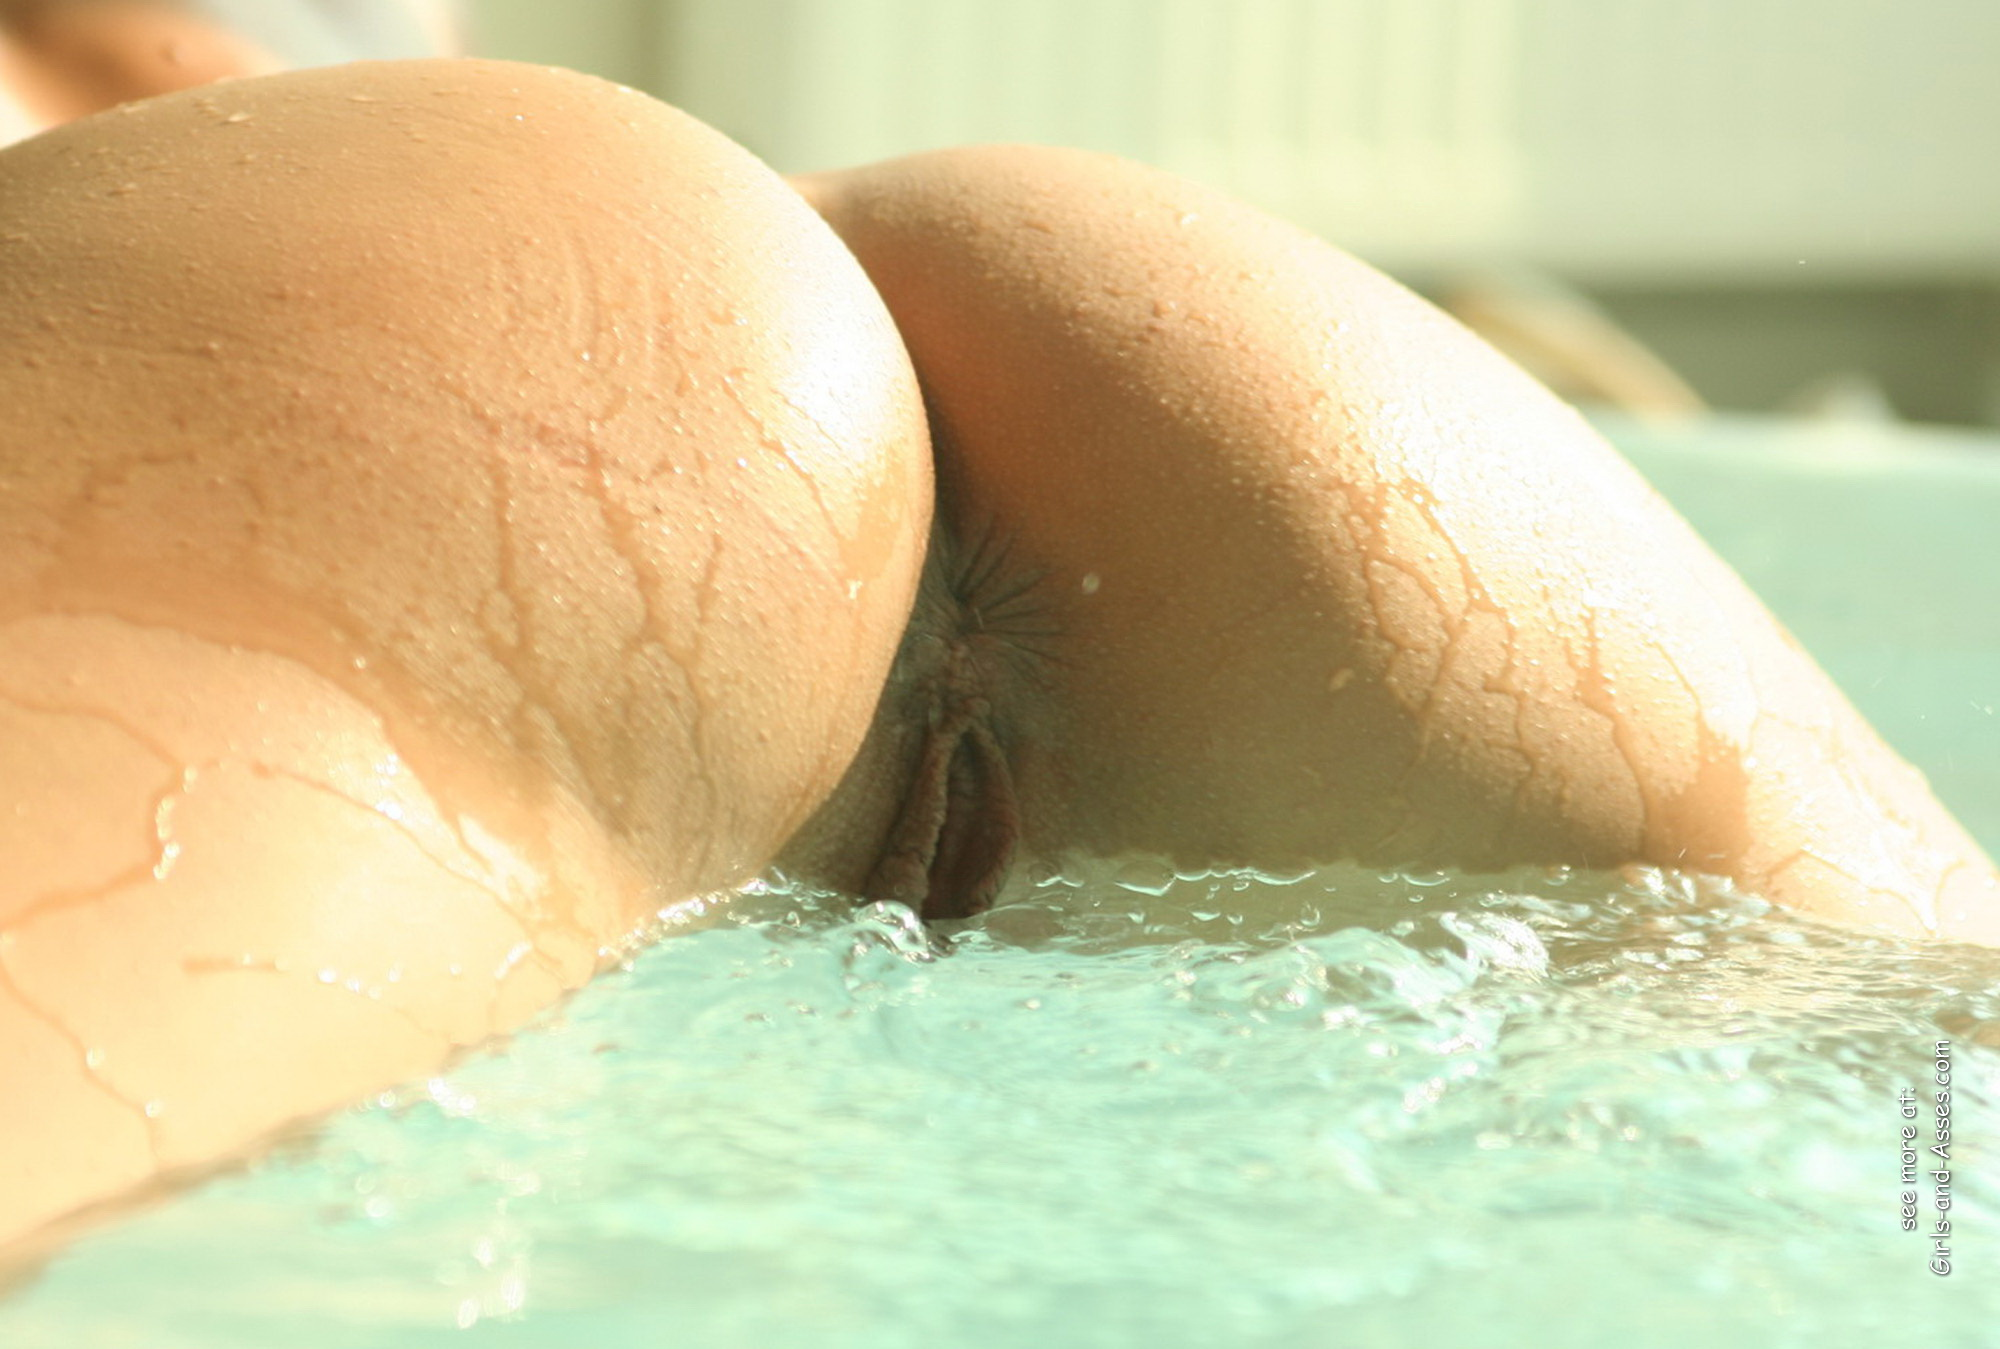 naked ass in doggystyle at the pool photography 00443